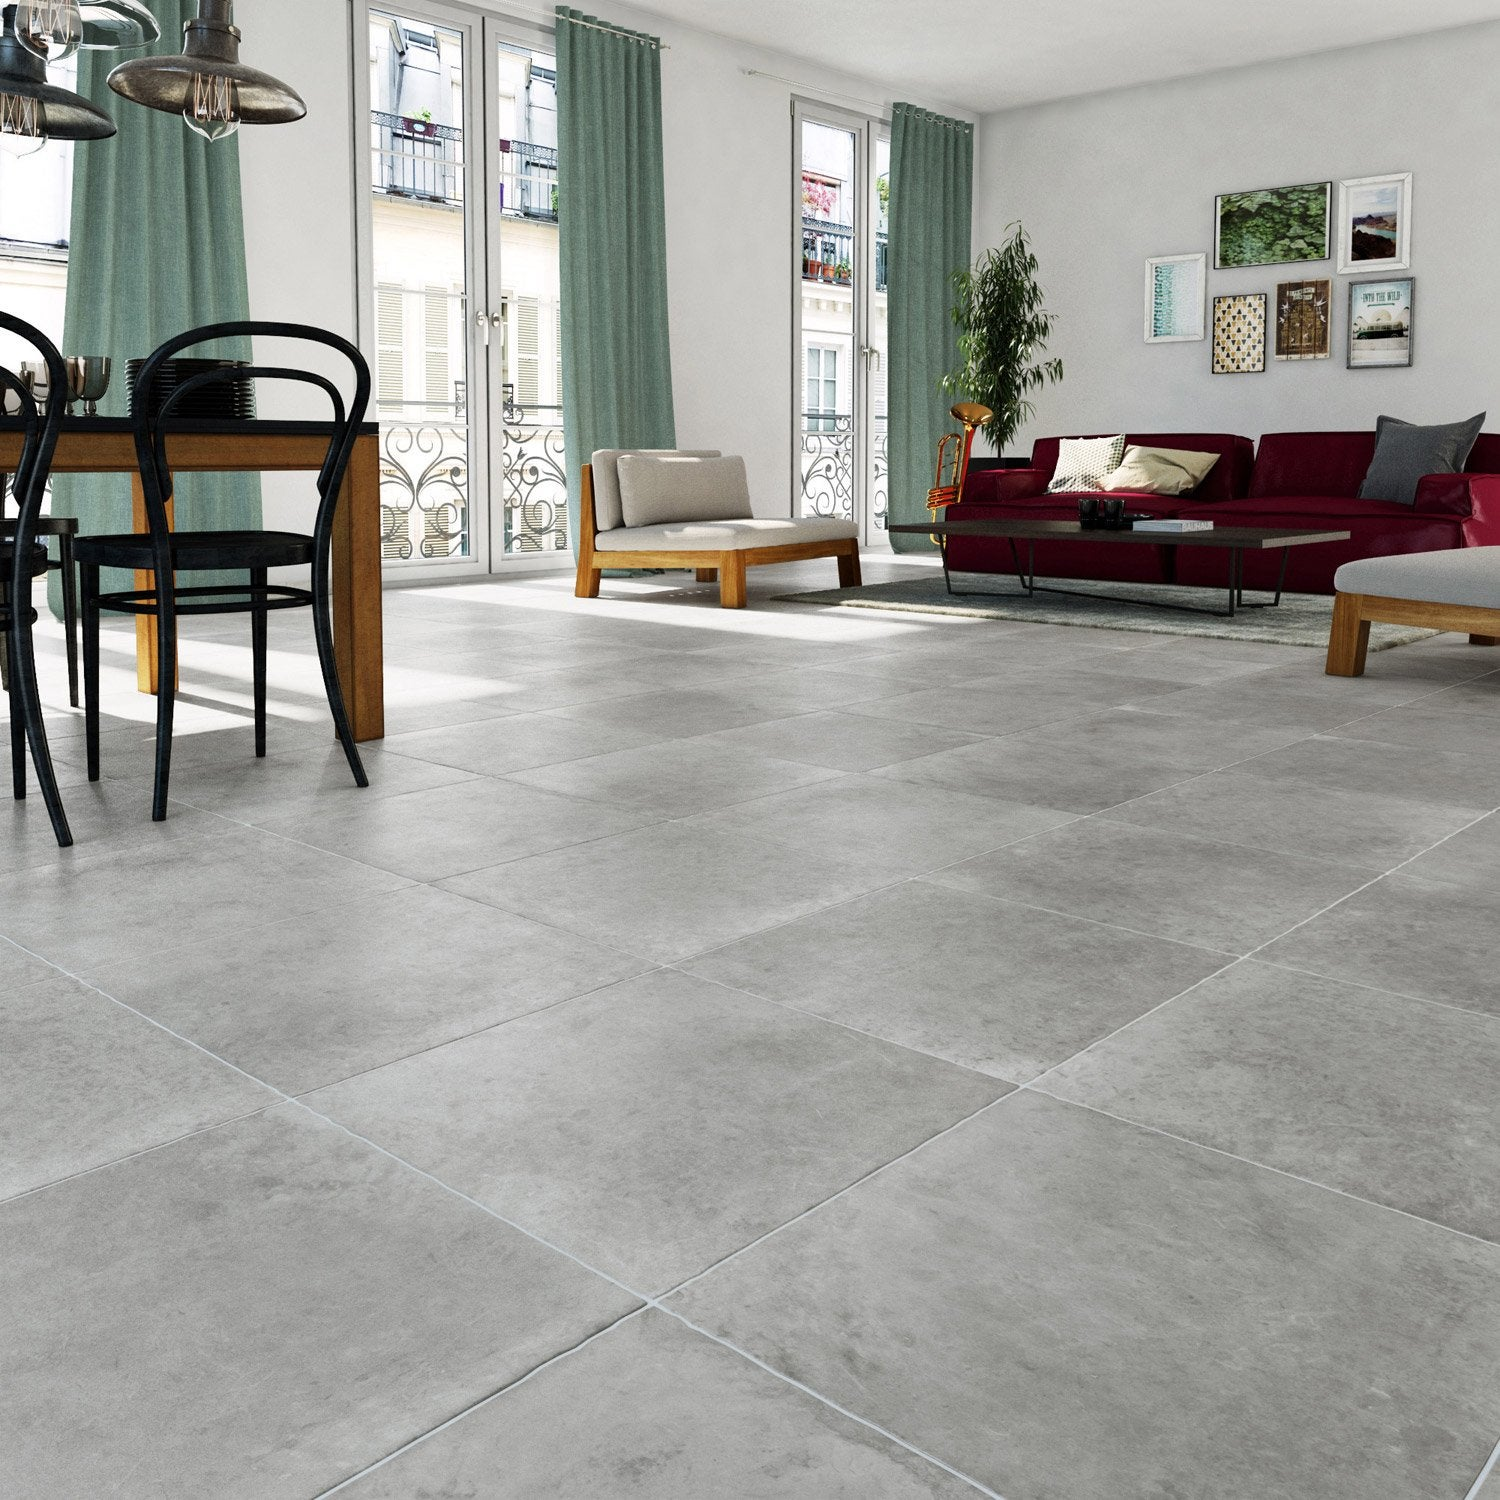 Carrelage sol et mur gris effet pierre monast re x l for Carrelage 50x50